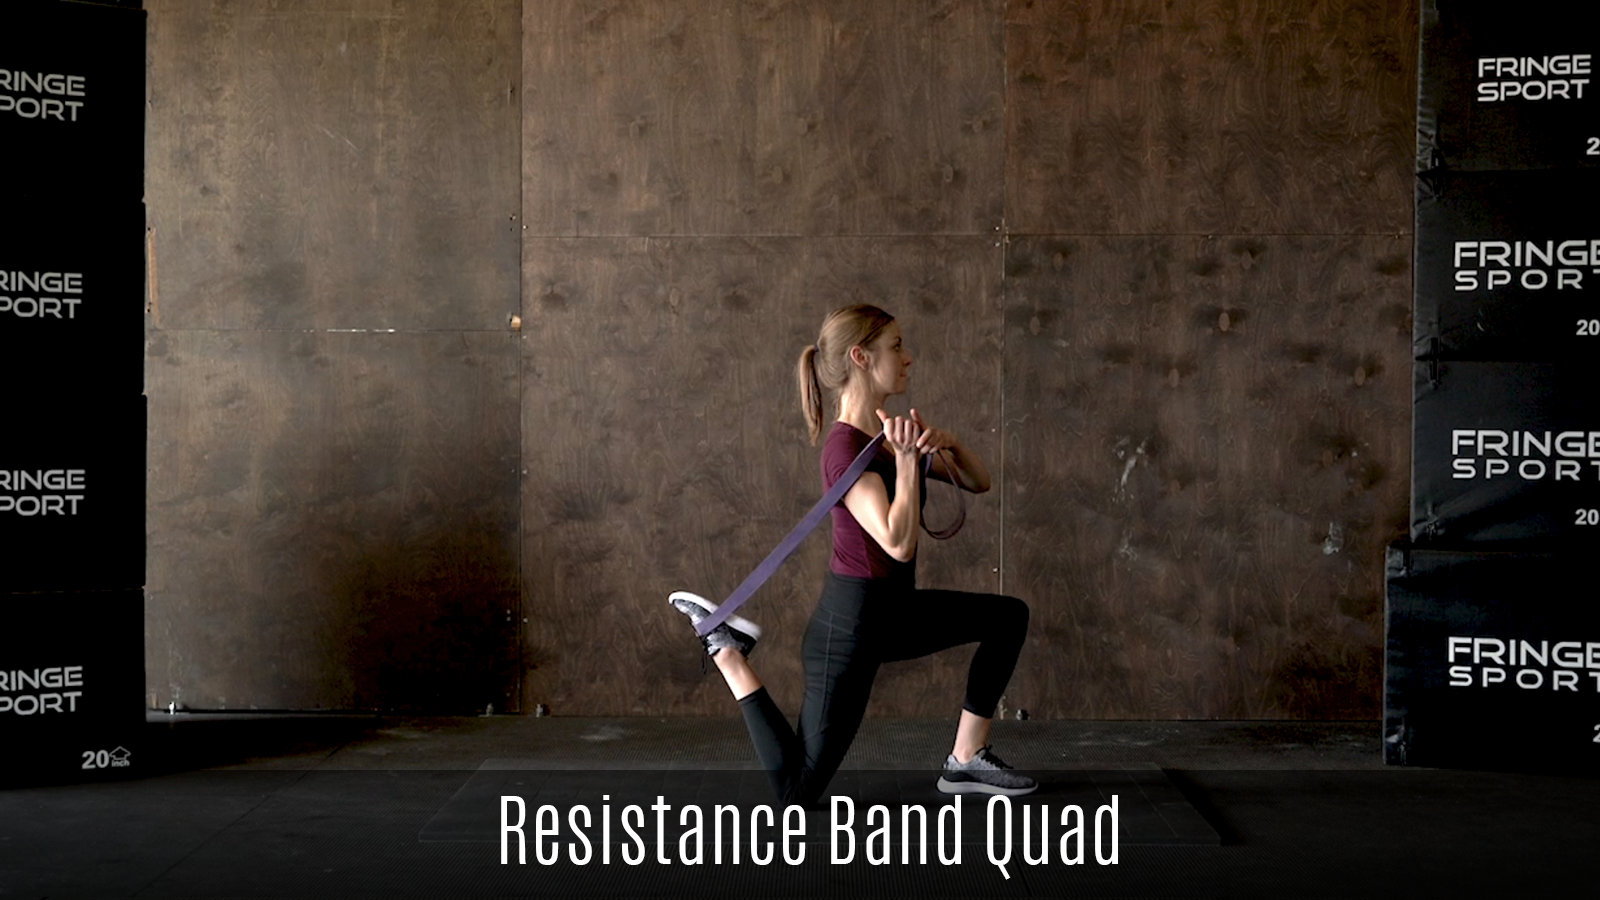 quad stretch demo using resistance band